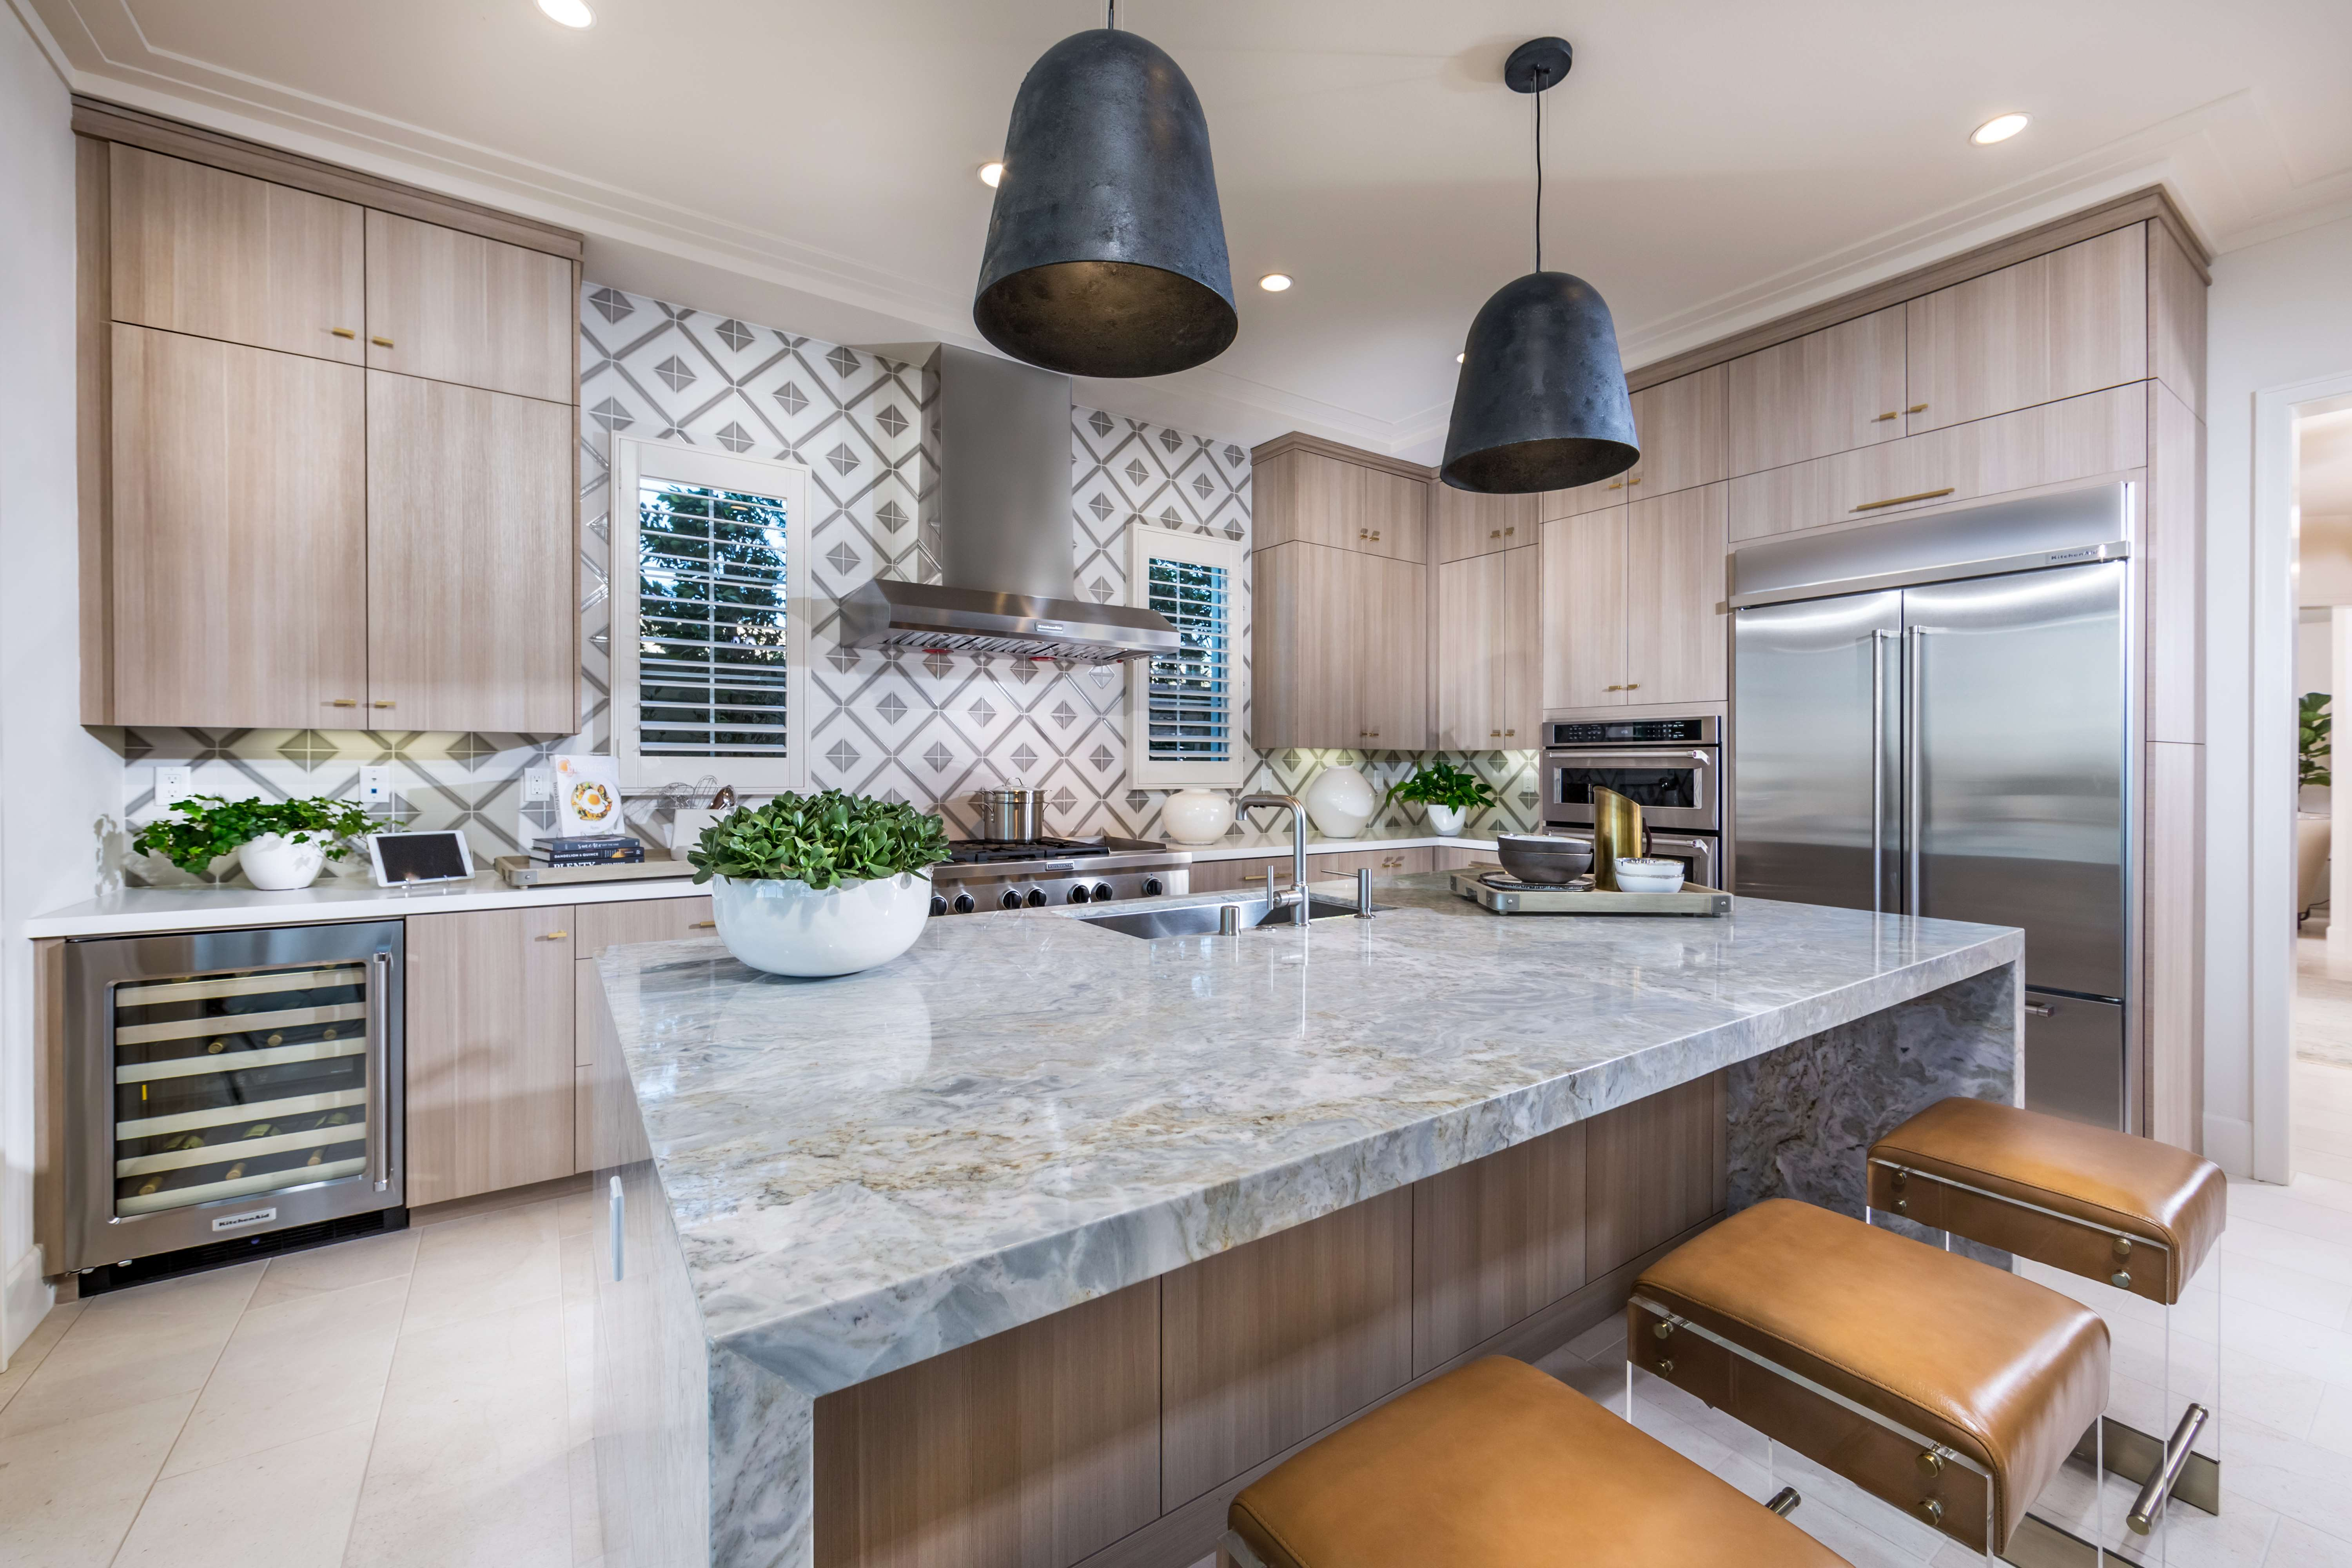 Kitchen Detail at Terra Residence 1 in Irvine